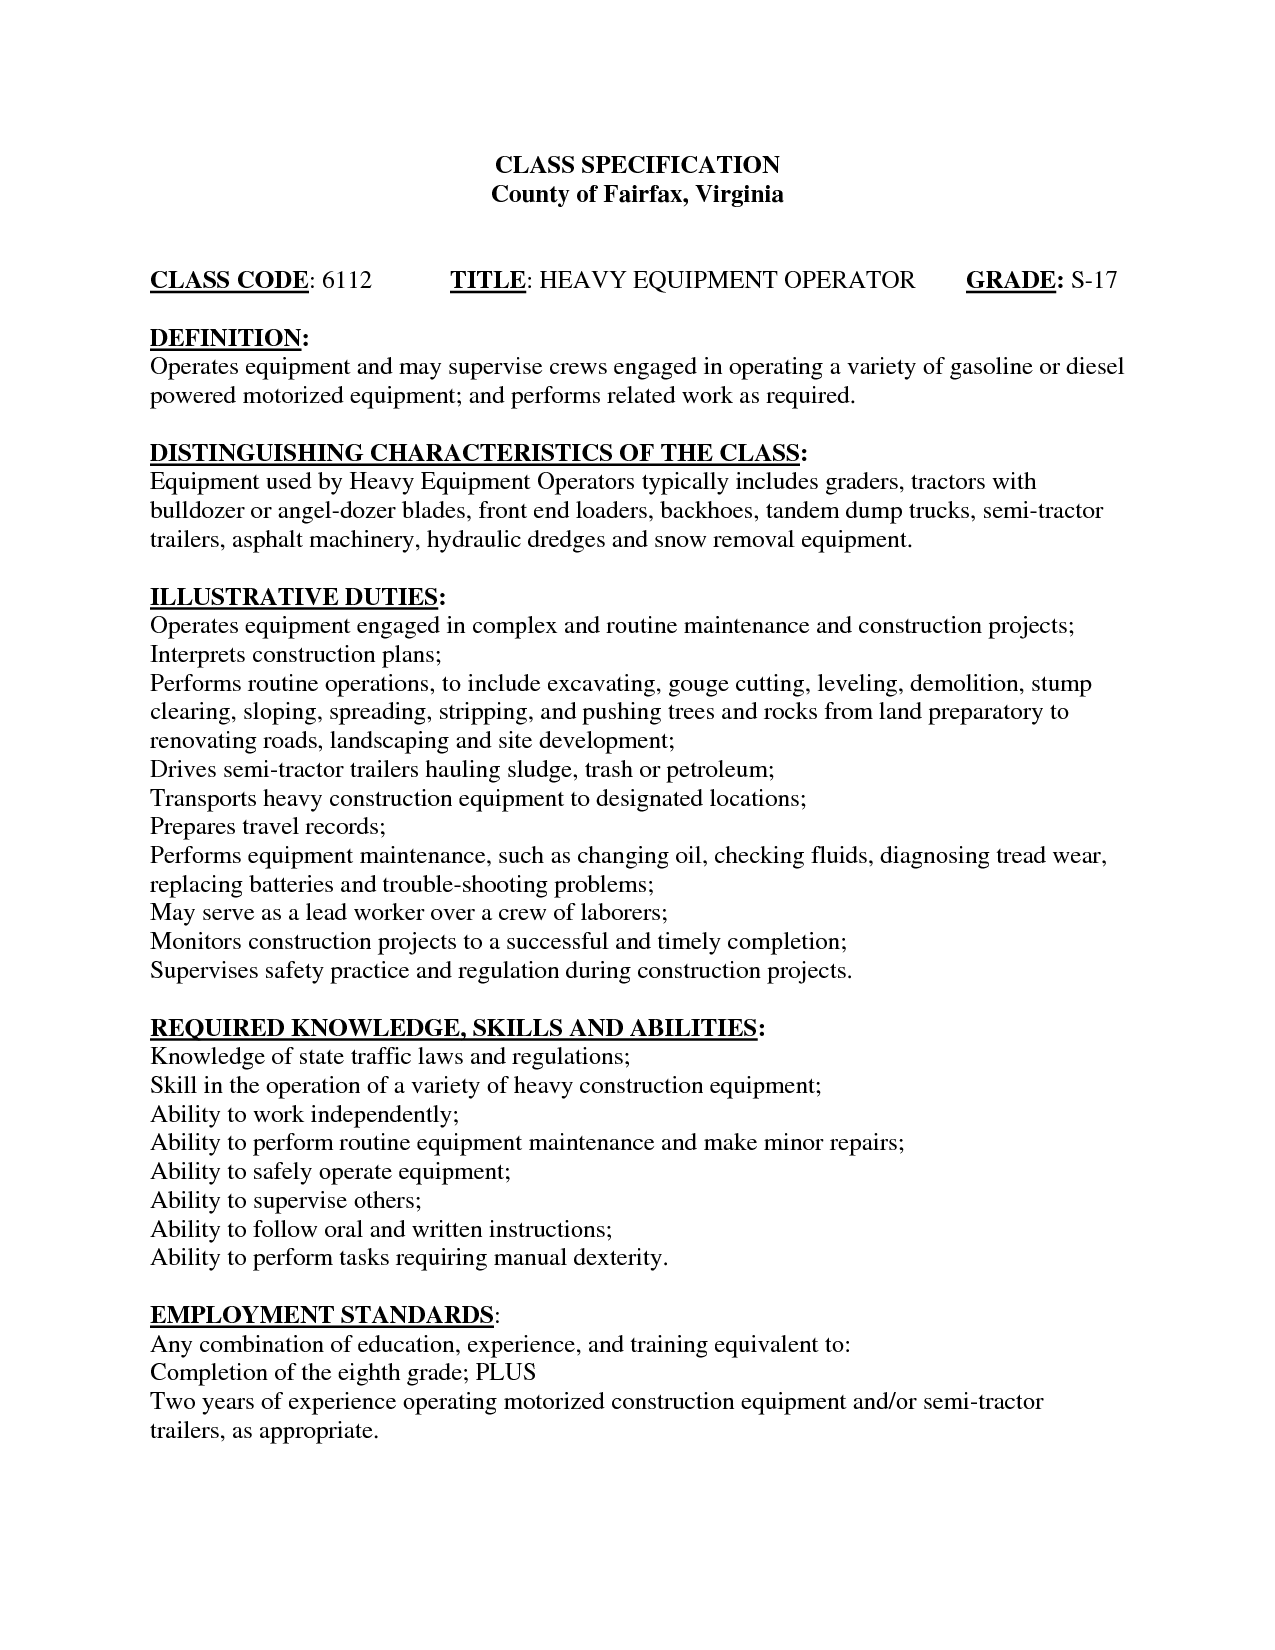 Heavy Equipment Operator Resume Example